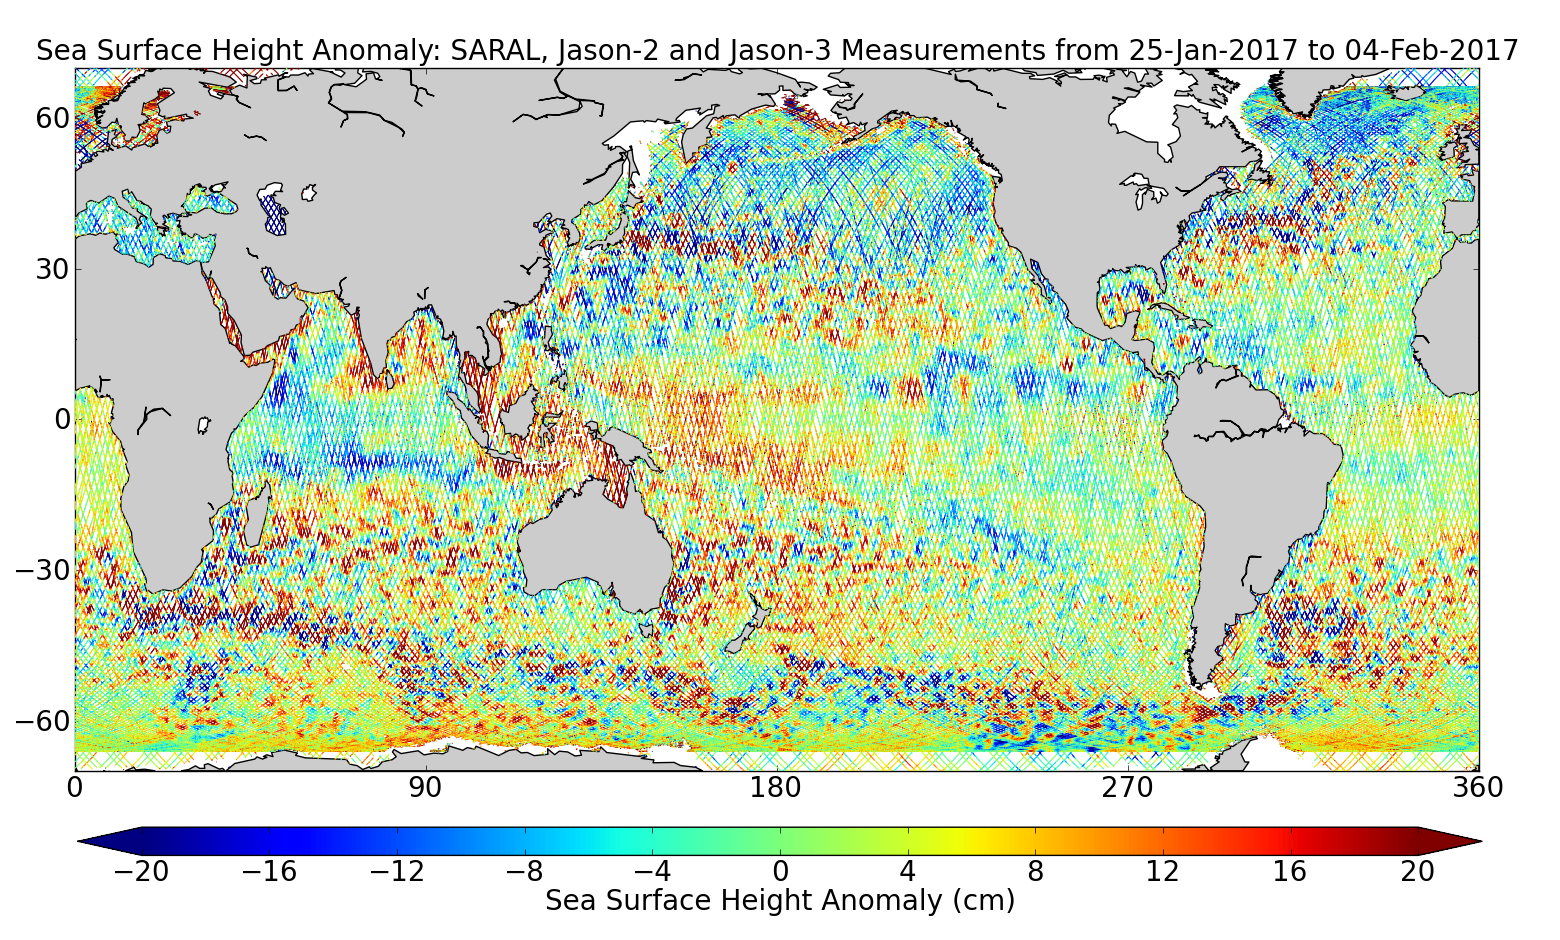 Sea Surface Height Anomaly: SARAL, Jason-2 and Jason-3 Measurements from 25-Jan-2017 to 04-Feb-2017